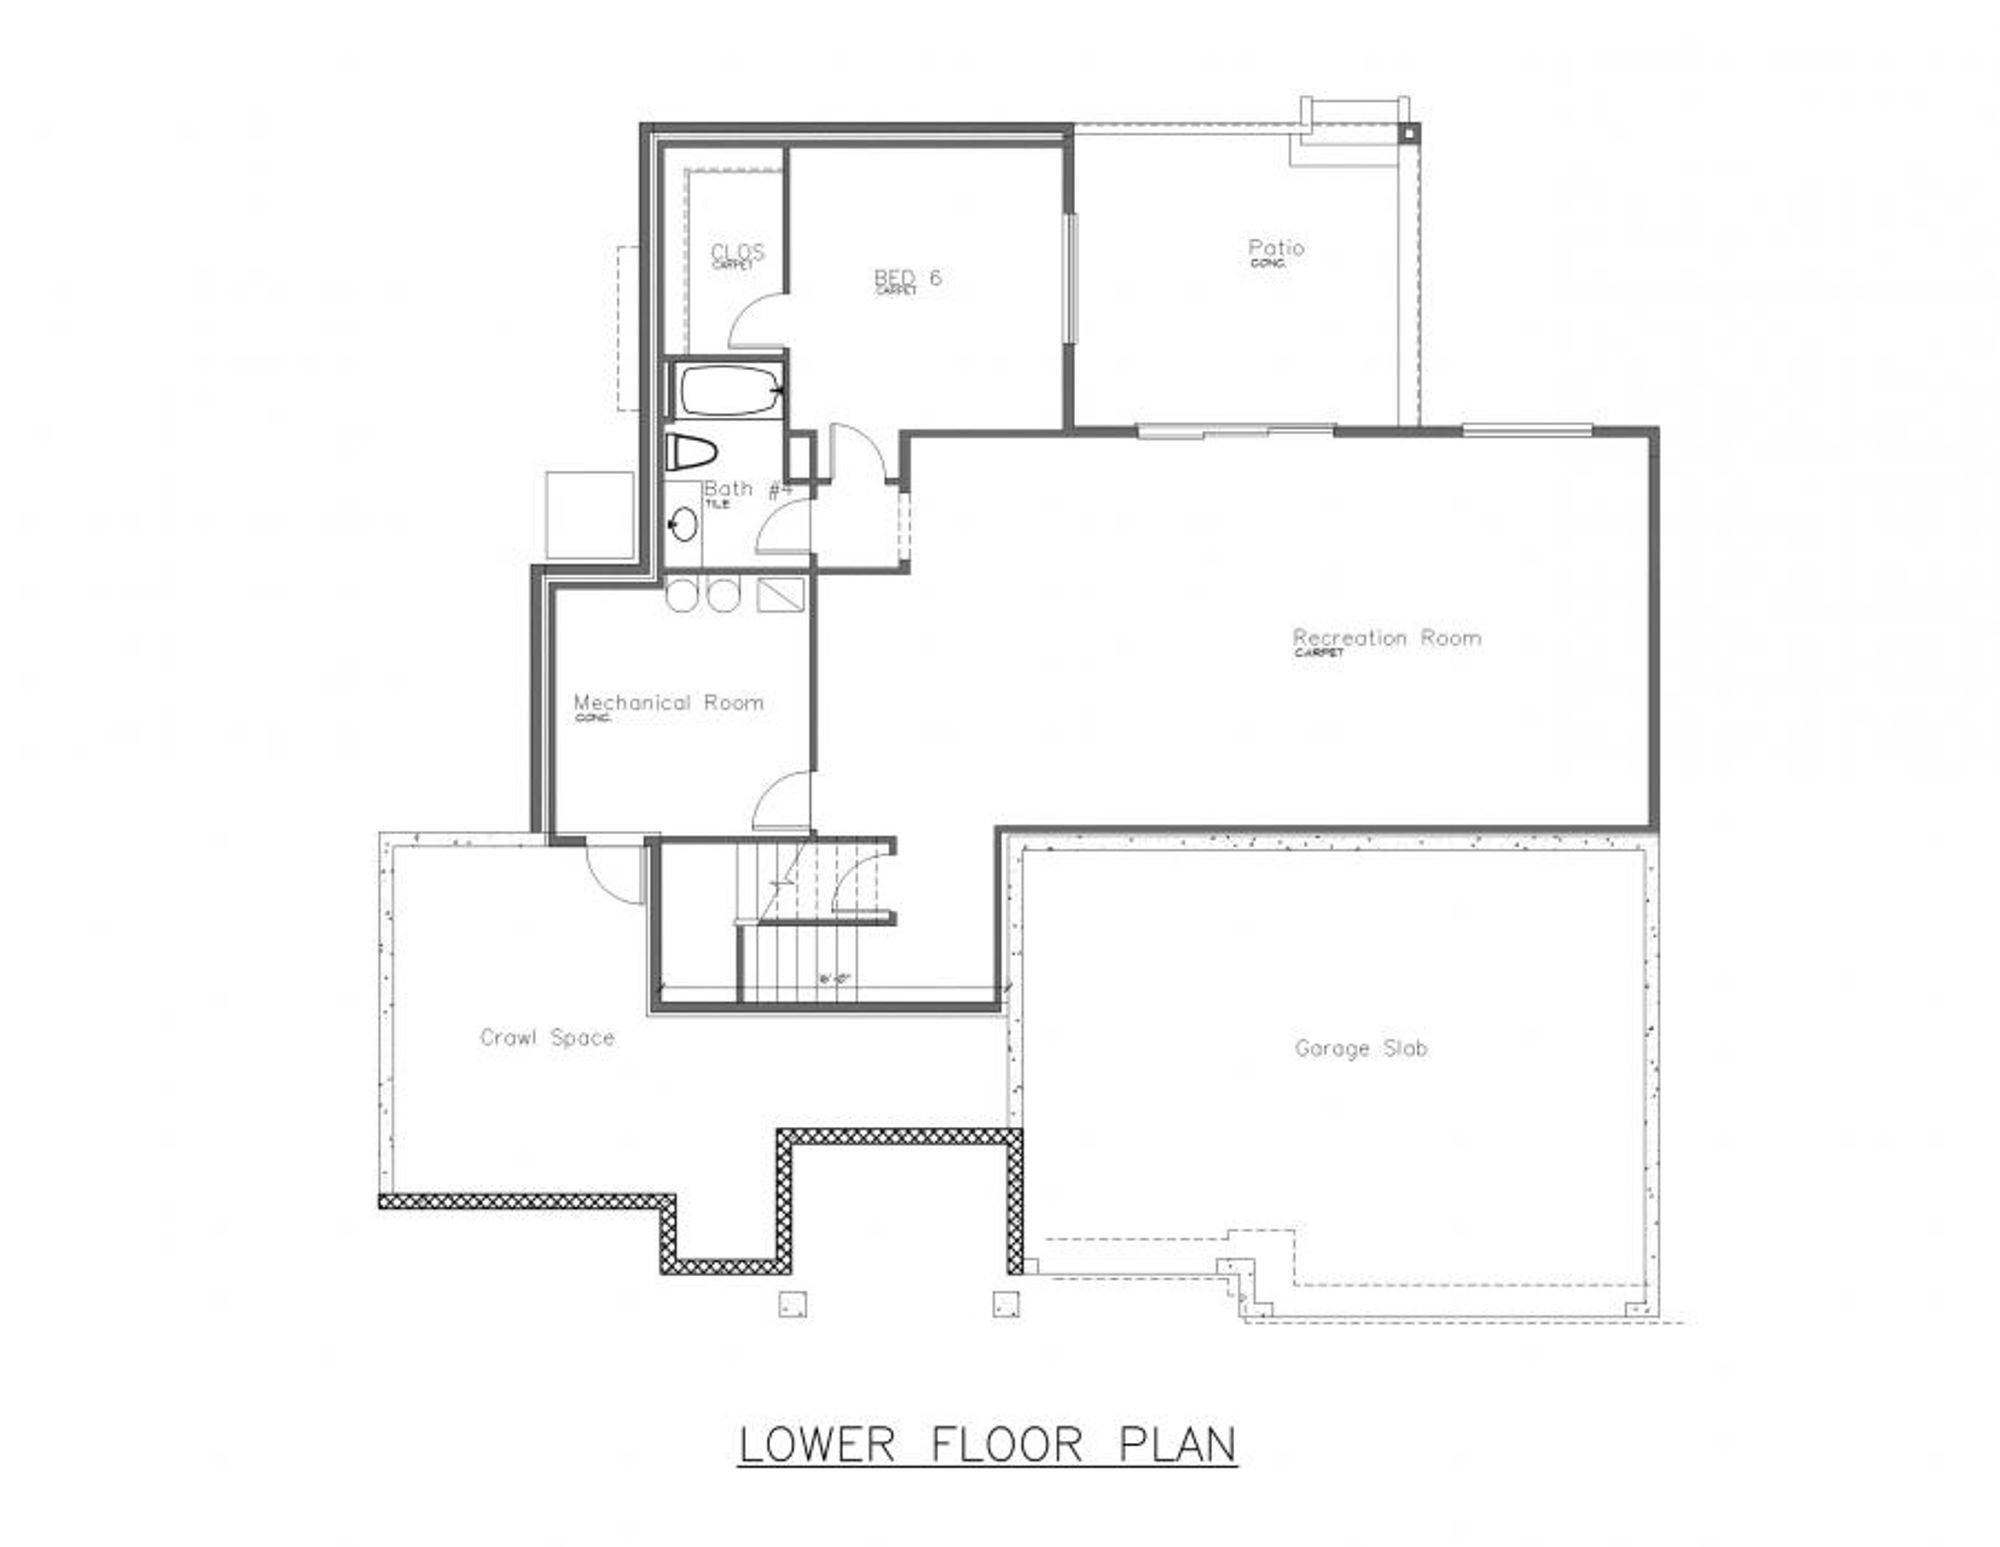 The Toulon Lower Floor Plan